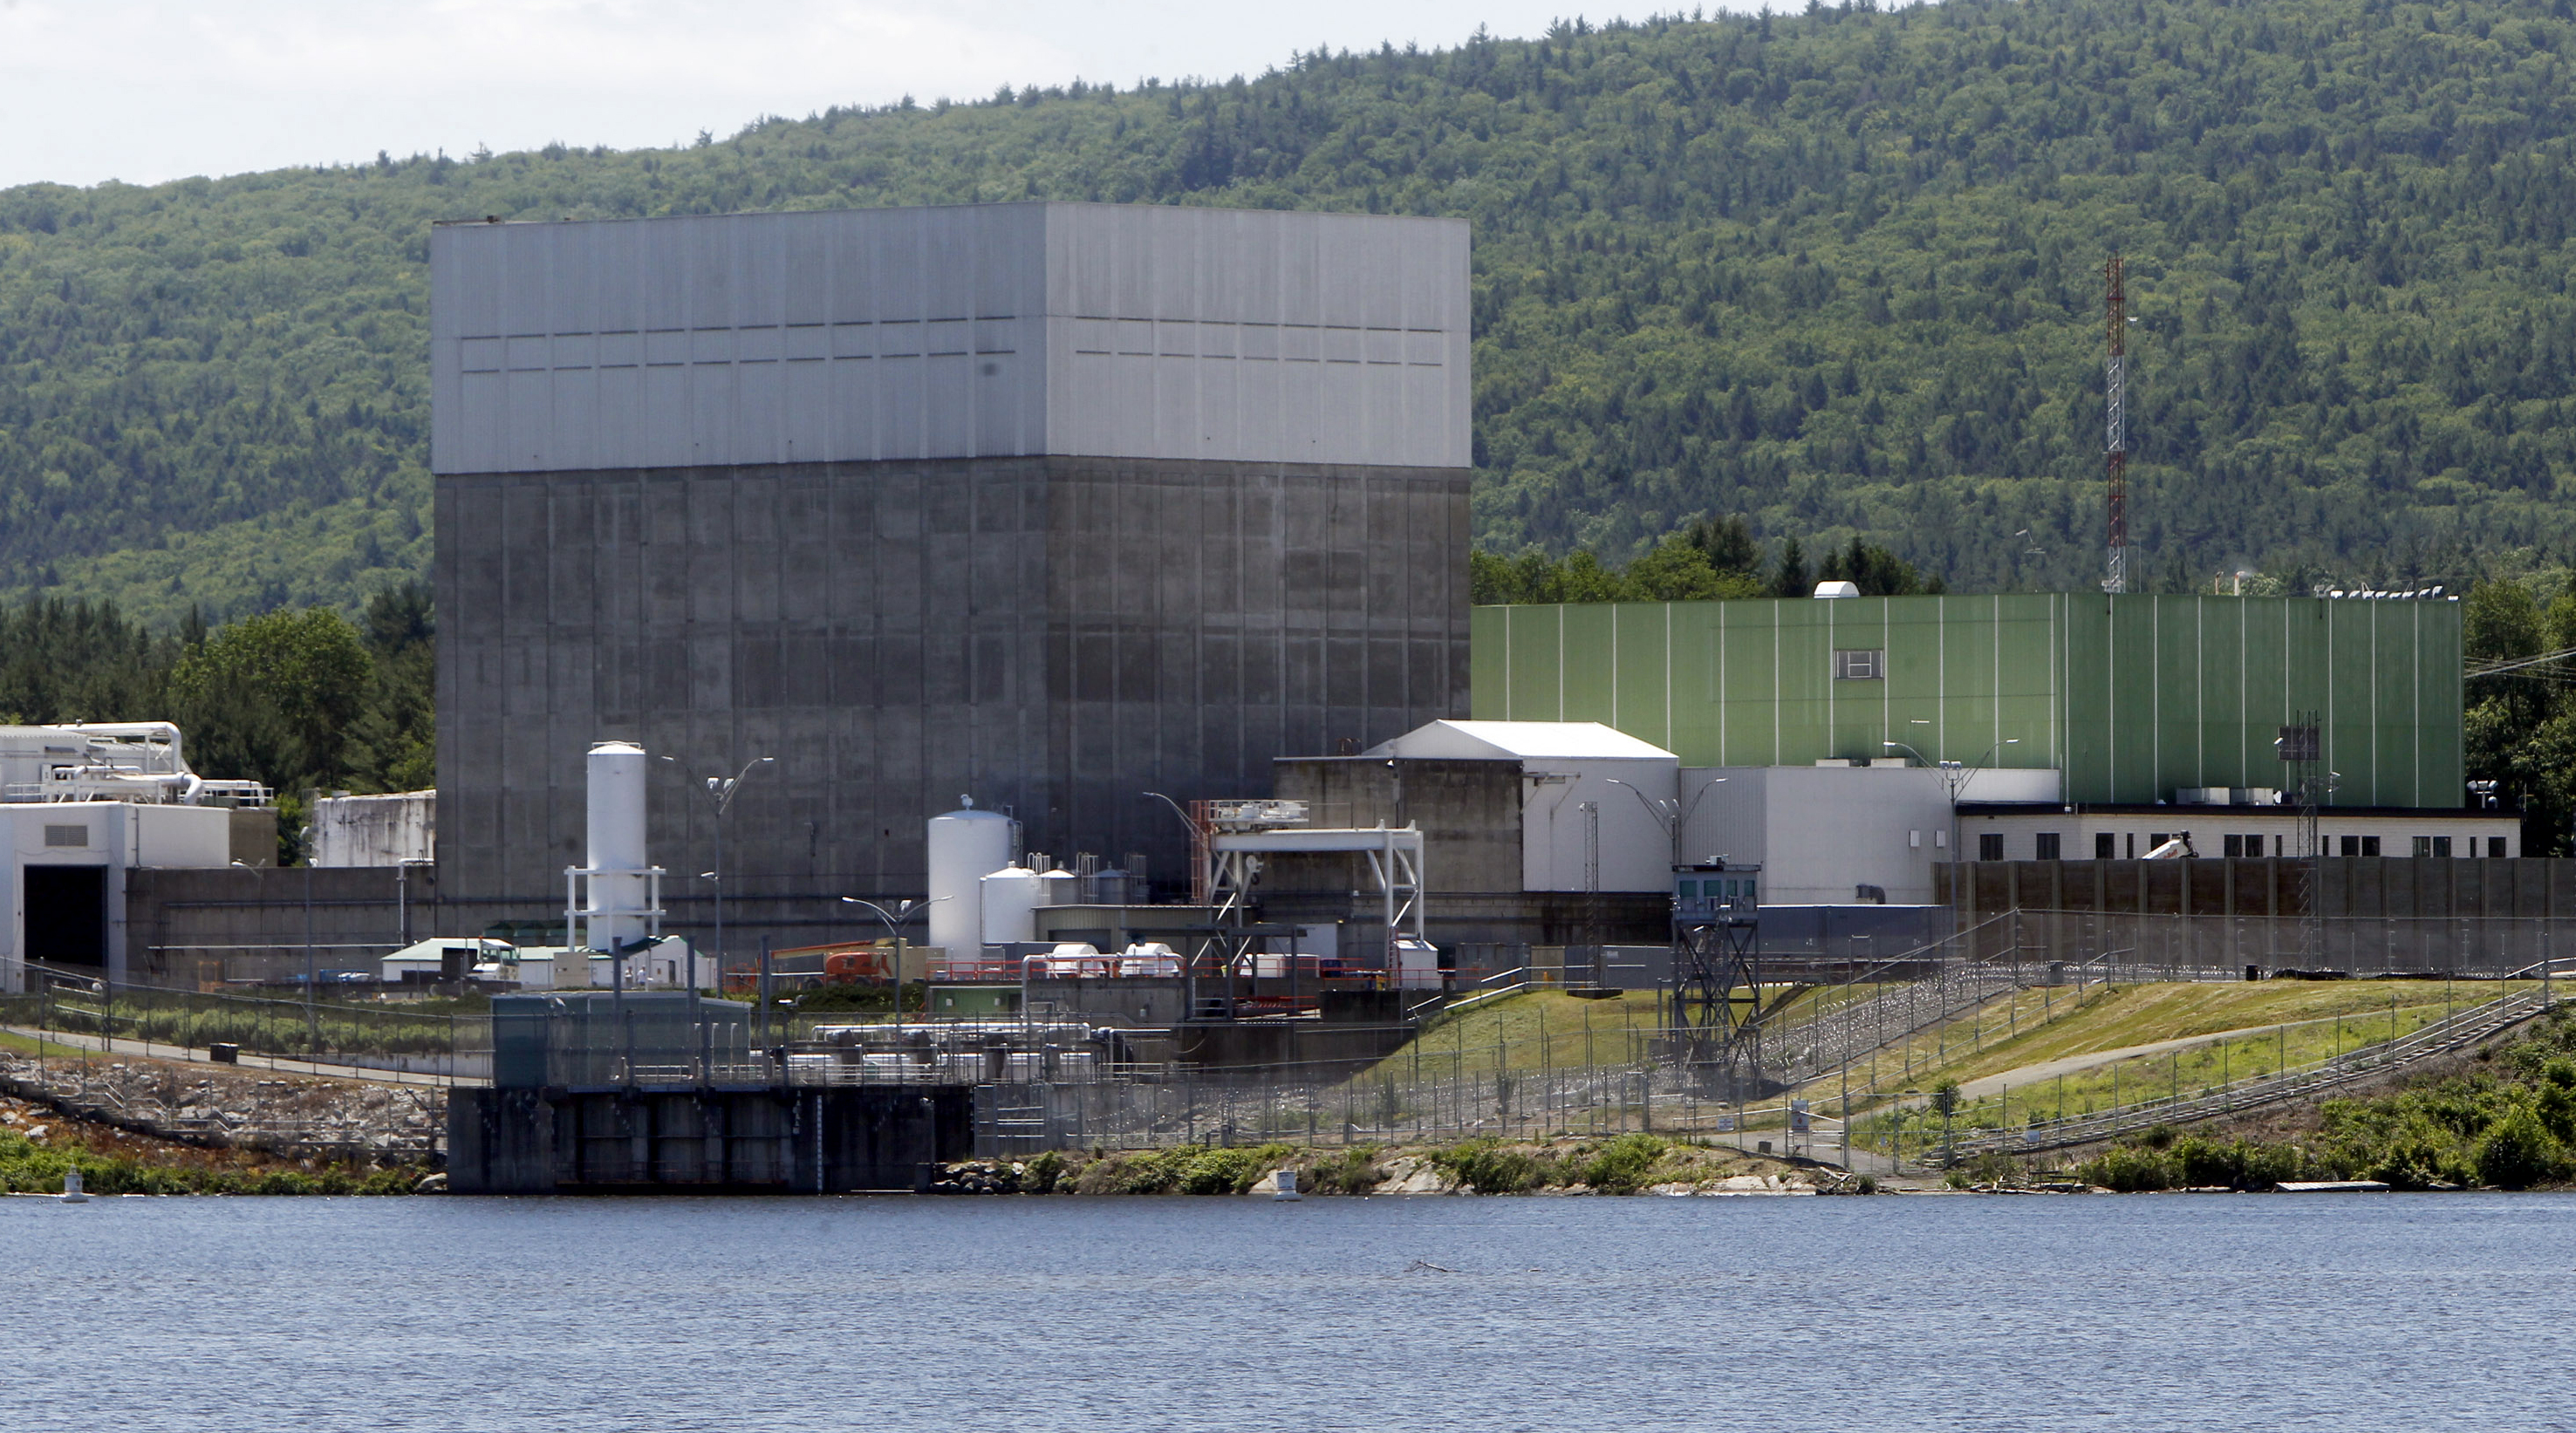 Unable To Compete On Price, Nuclear Power On The Decline In The U.S.